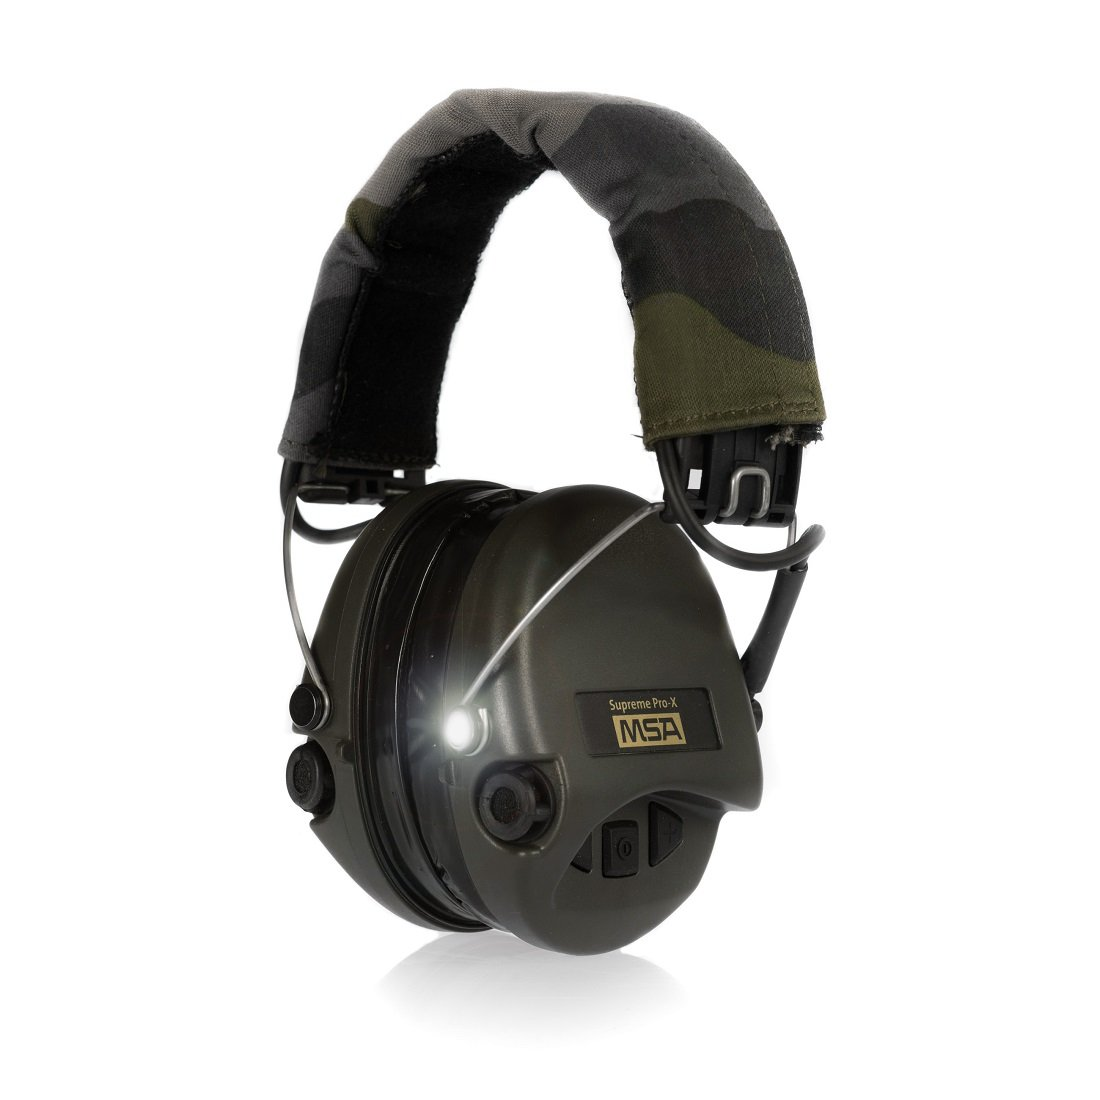 MSA Sordin Supreme Pro X with LED Light - Electronic EarMuff with camo-band, green cups and gel seals fitted by Sordin